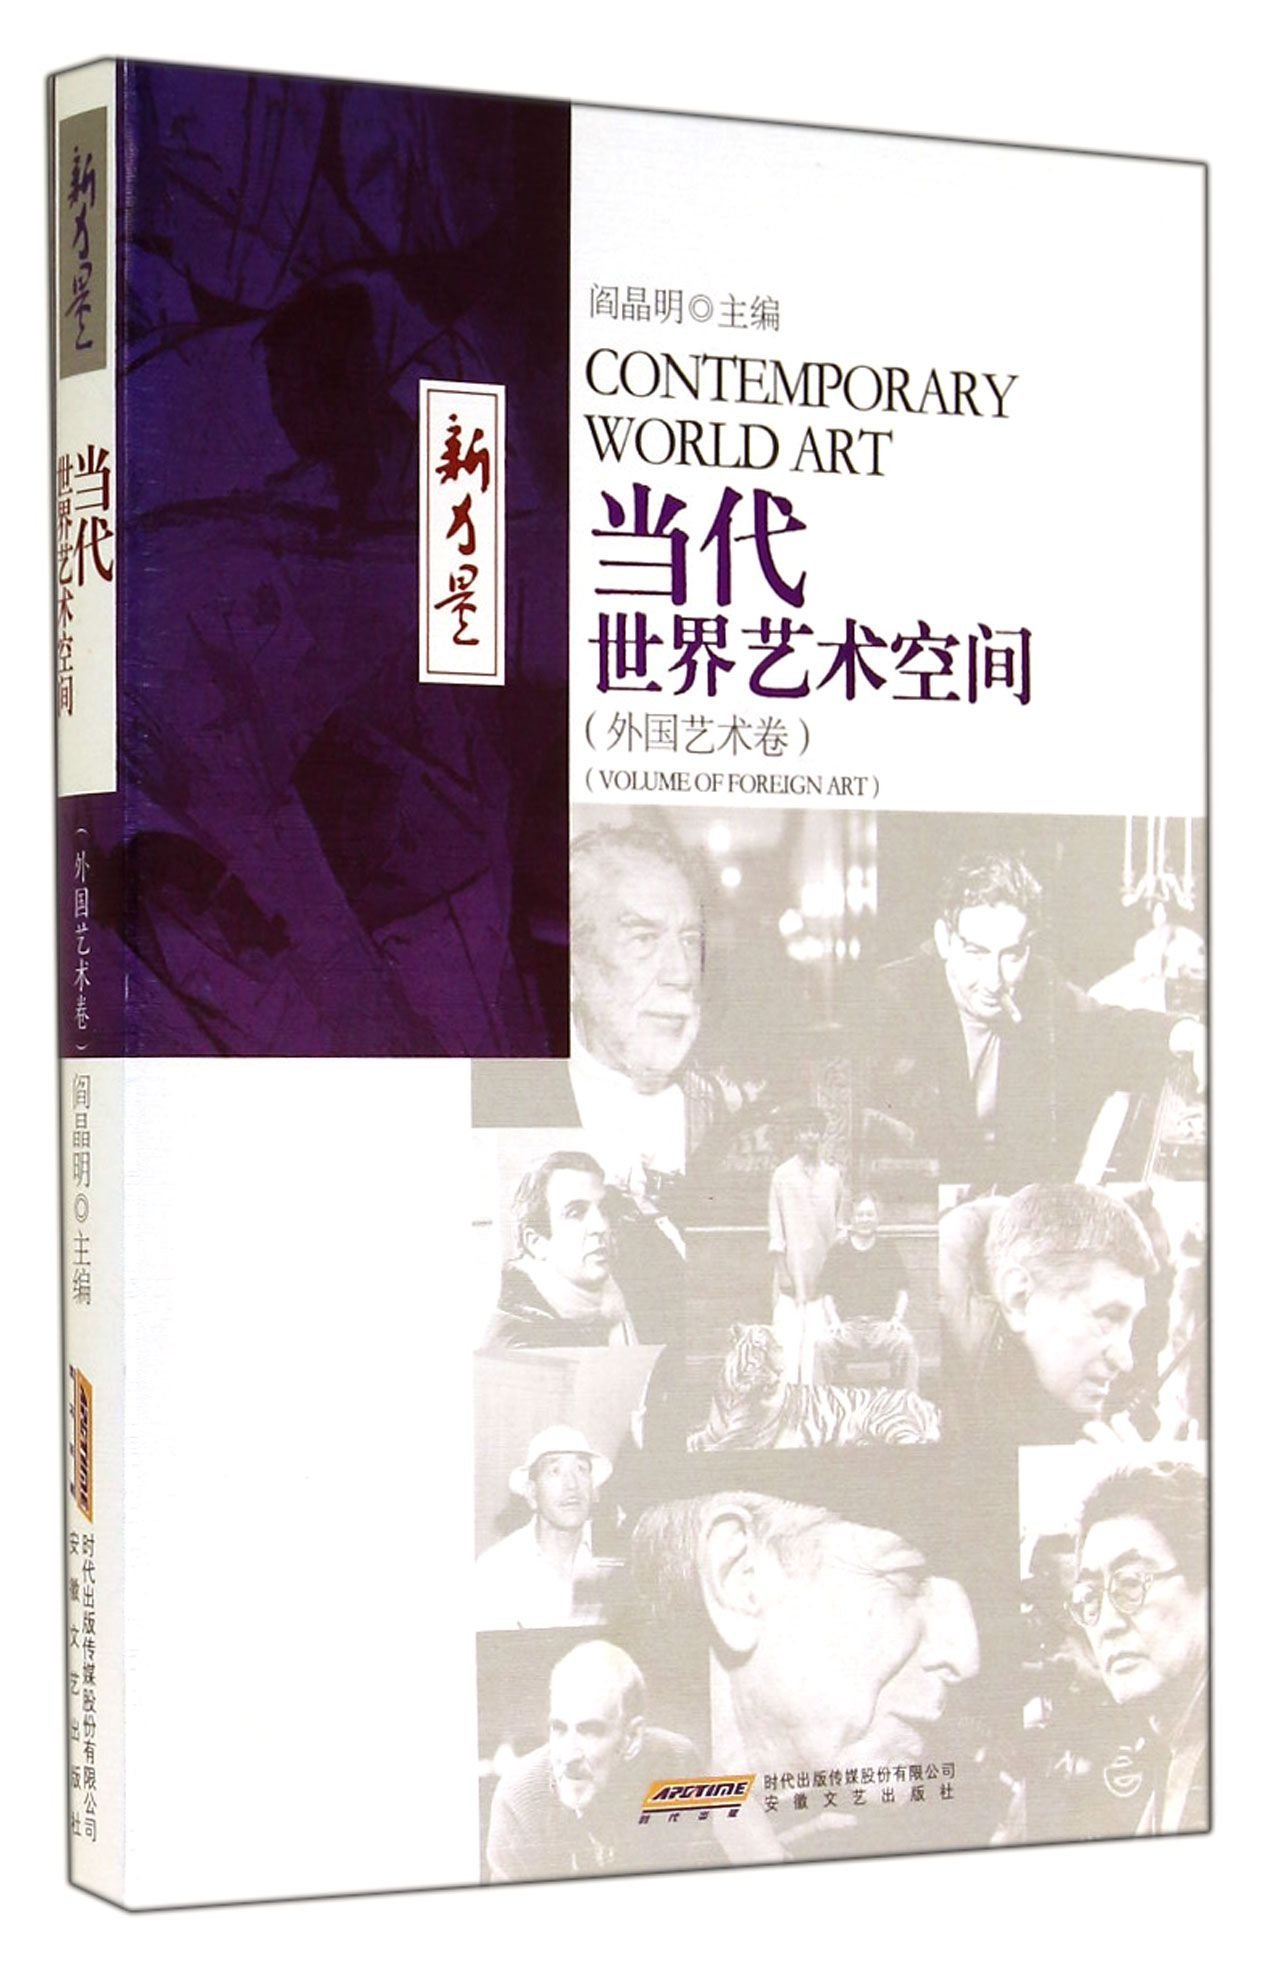 Read Online New Force book bundle: Contemporary World Art Space (foreign art volumes)(Chinese Edition) PDF